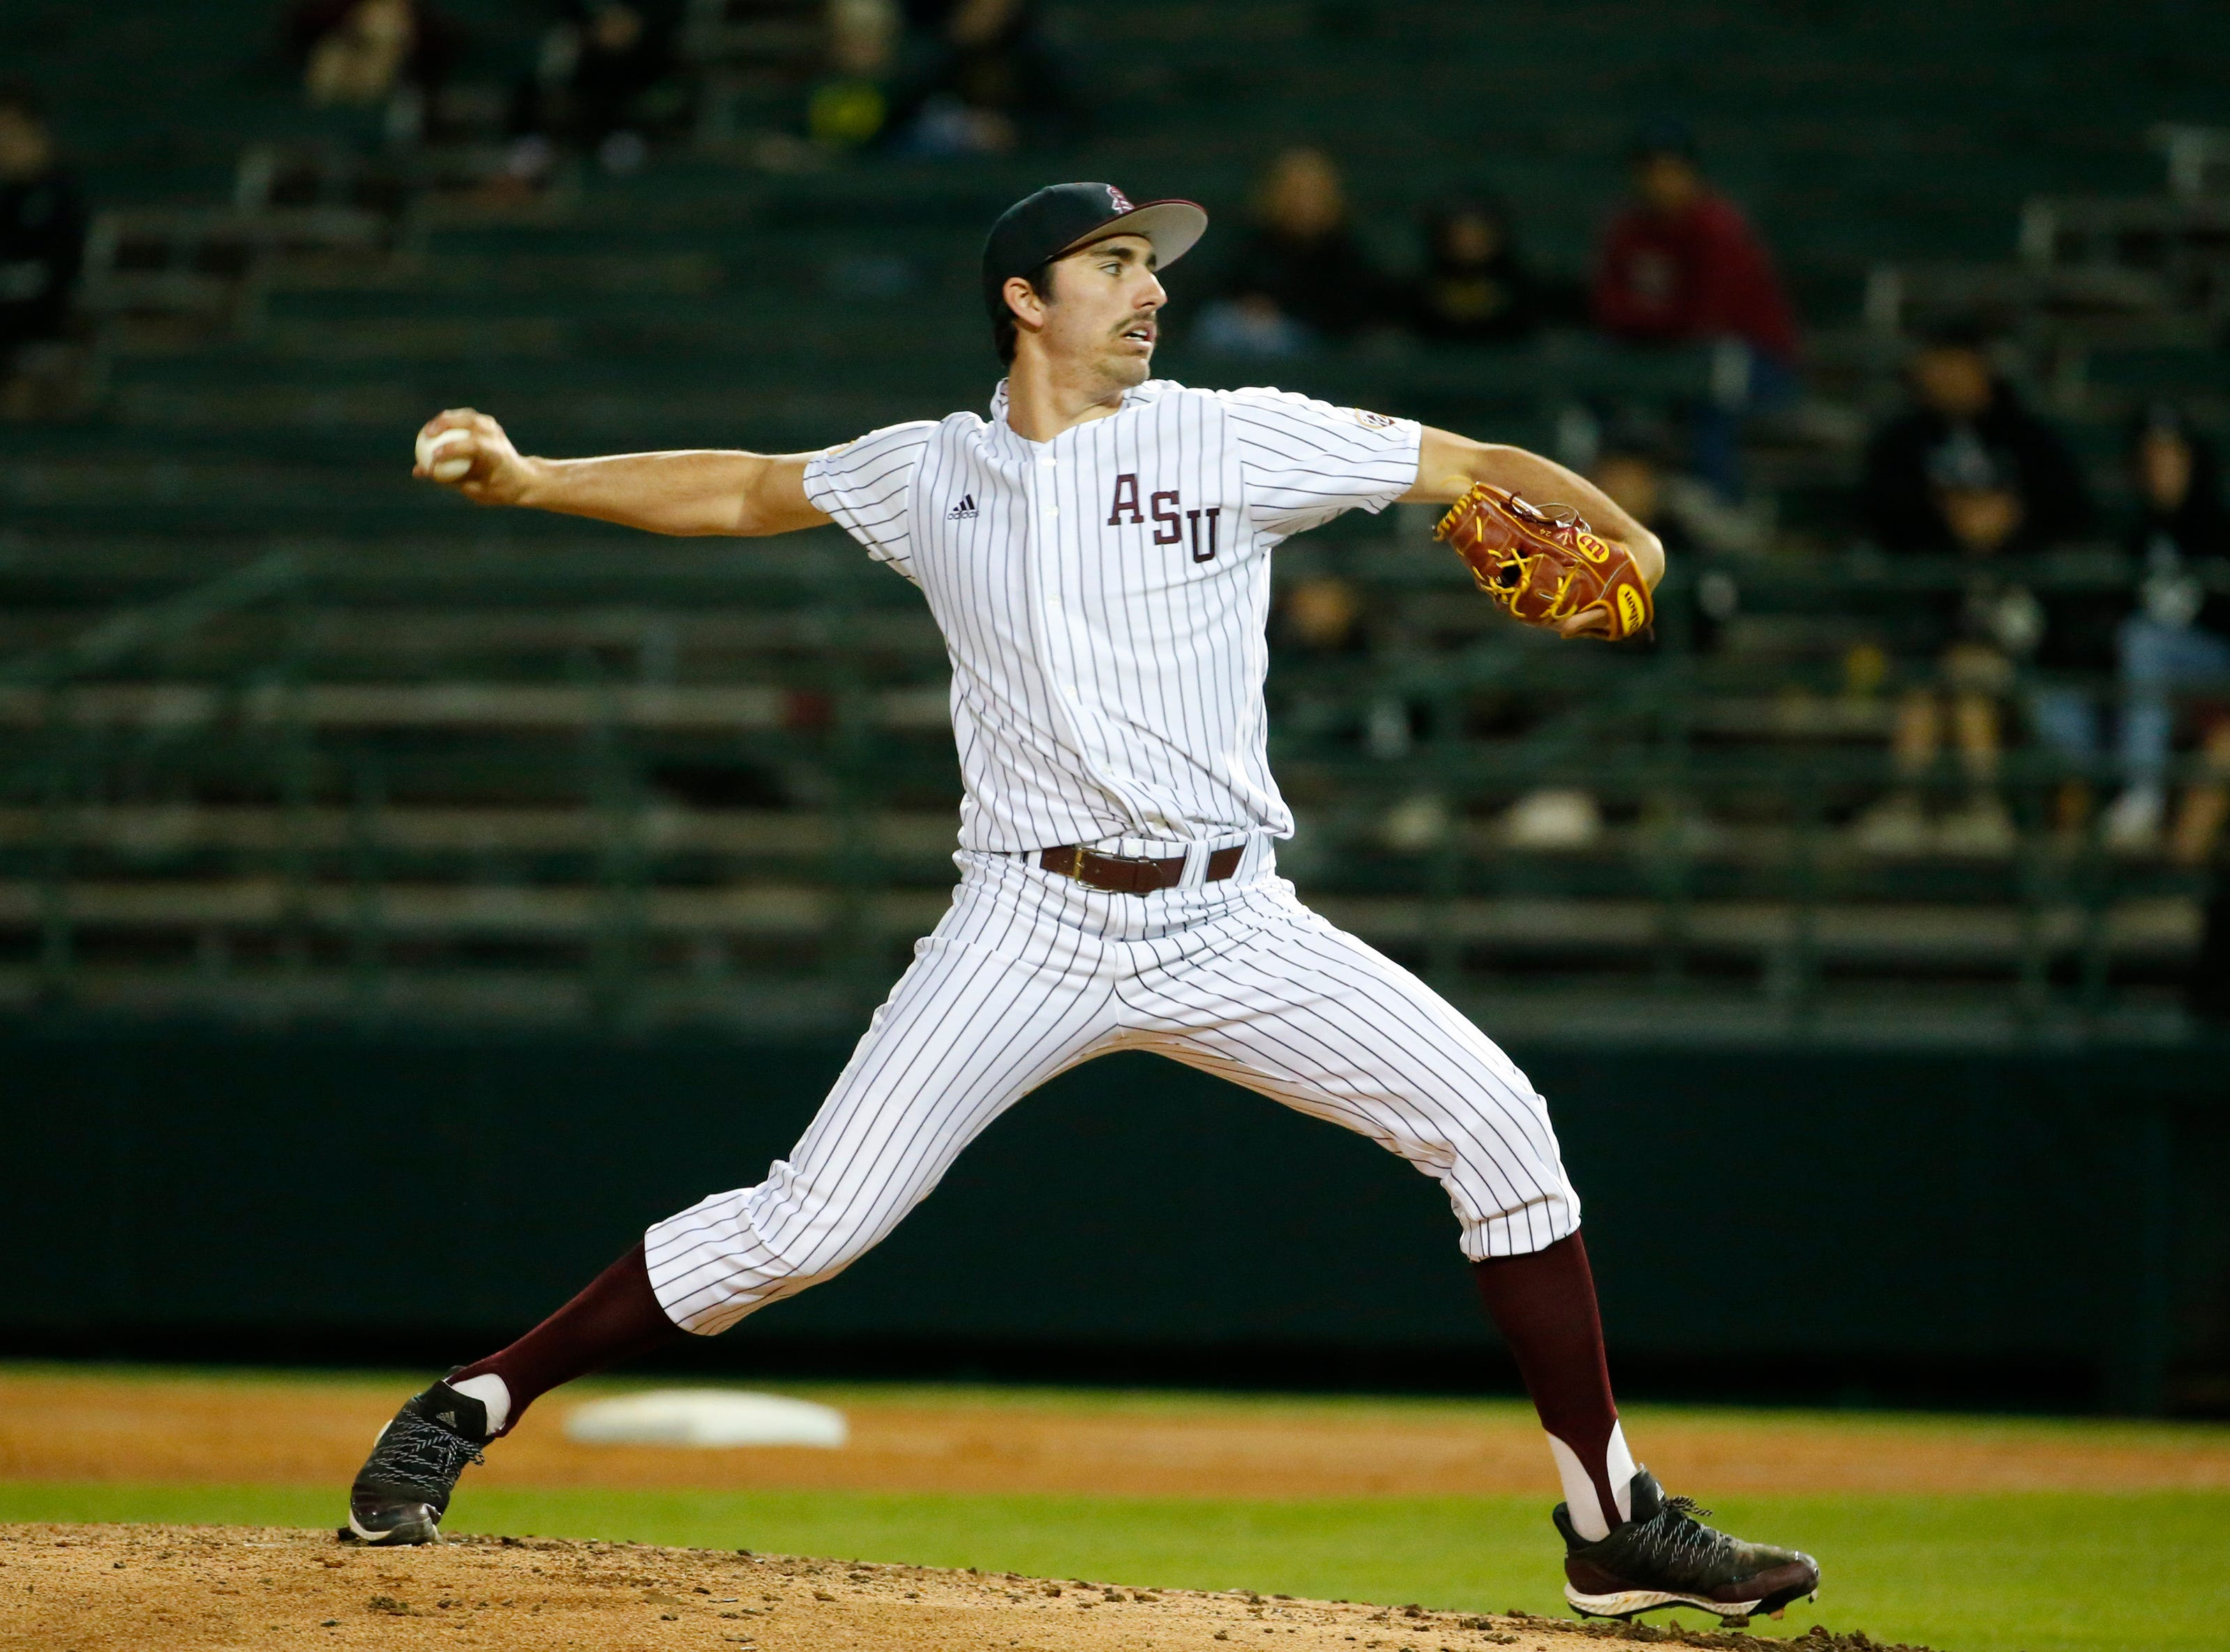 ASU RHP Blake Burzell (24) throws during a baseball game against New Mexico at Phoenix Municipal Stadium on March 13, 2019.